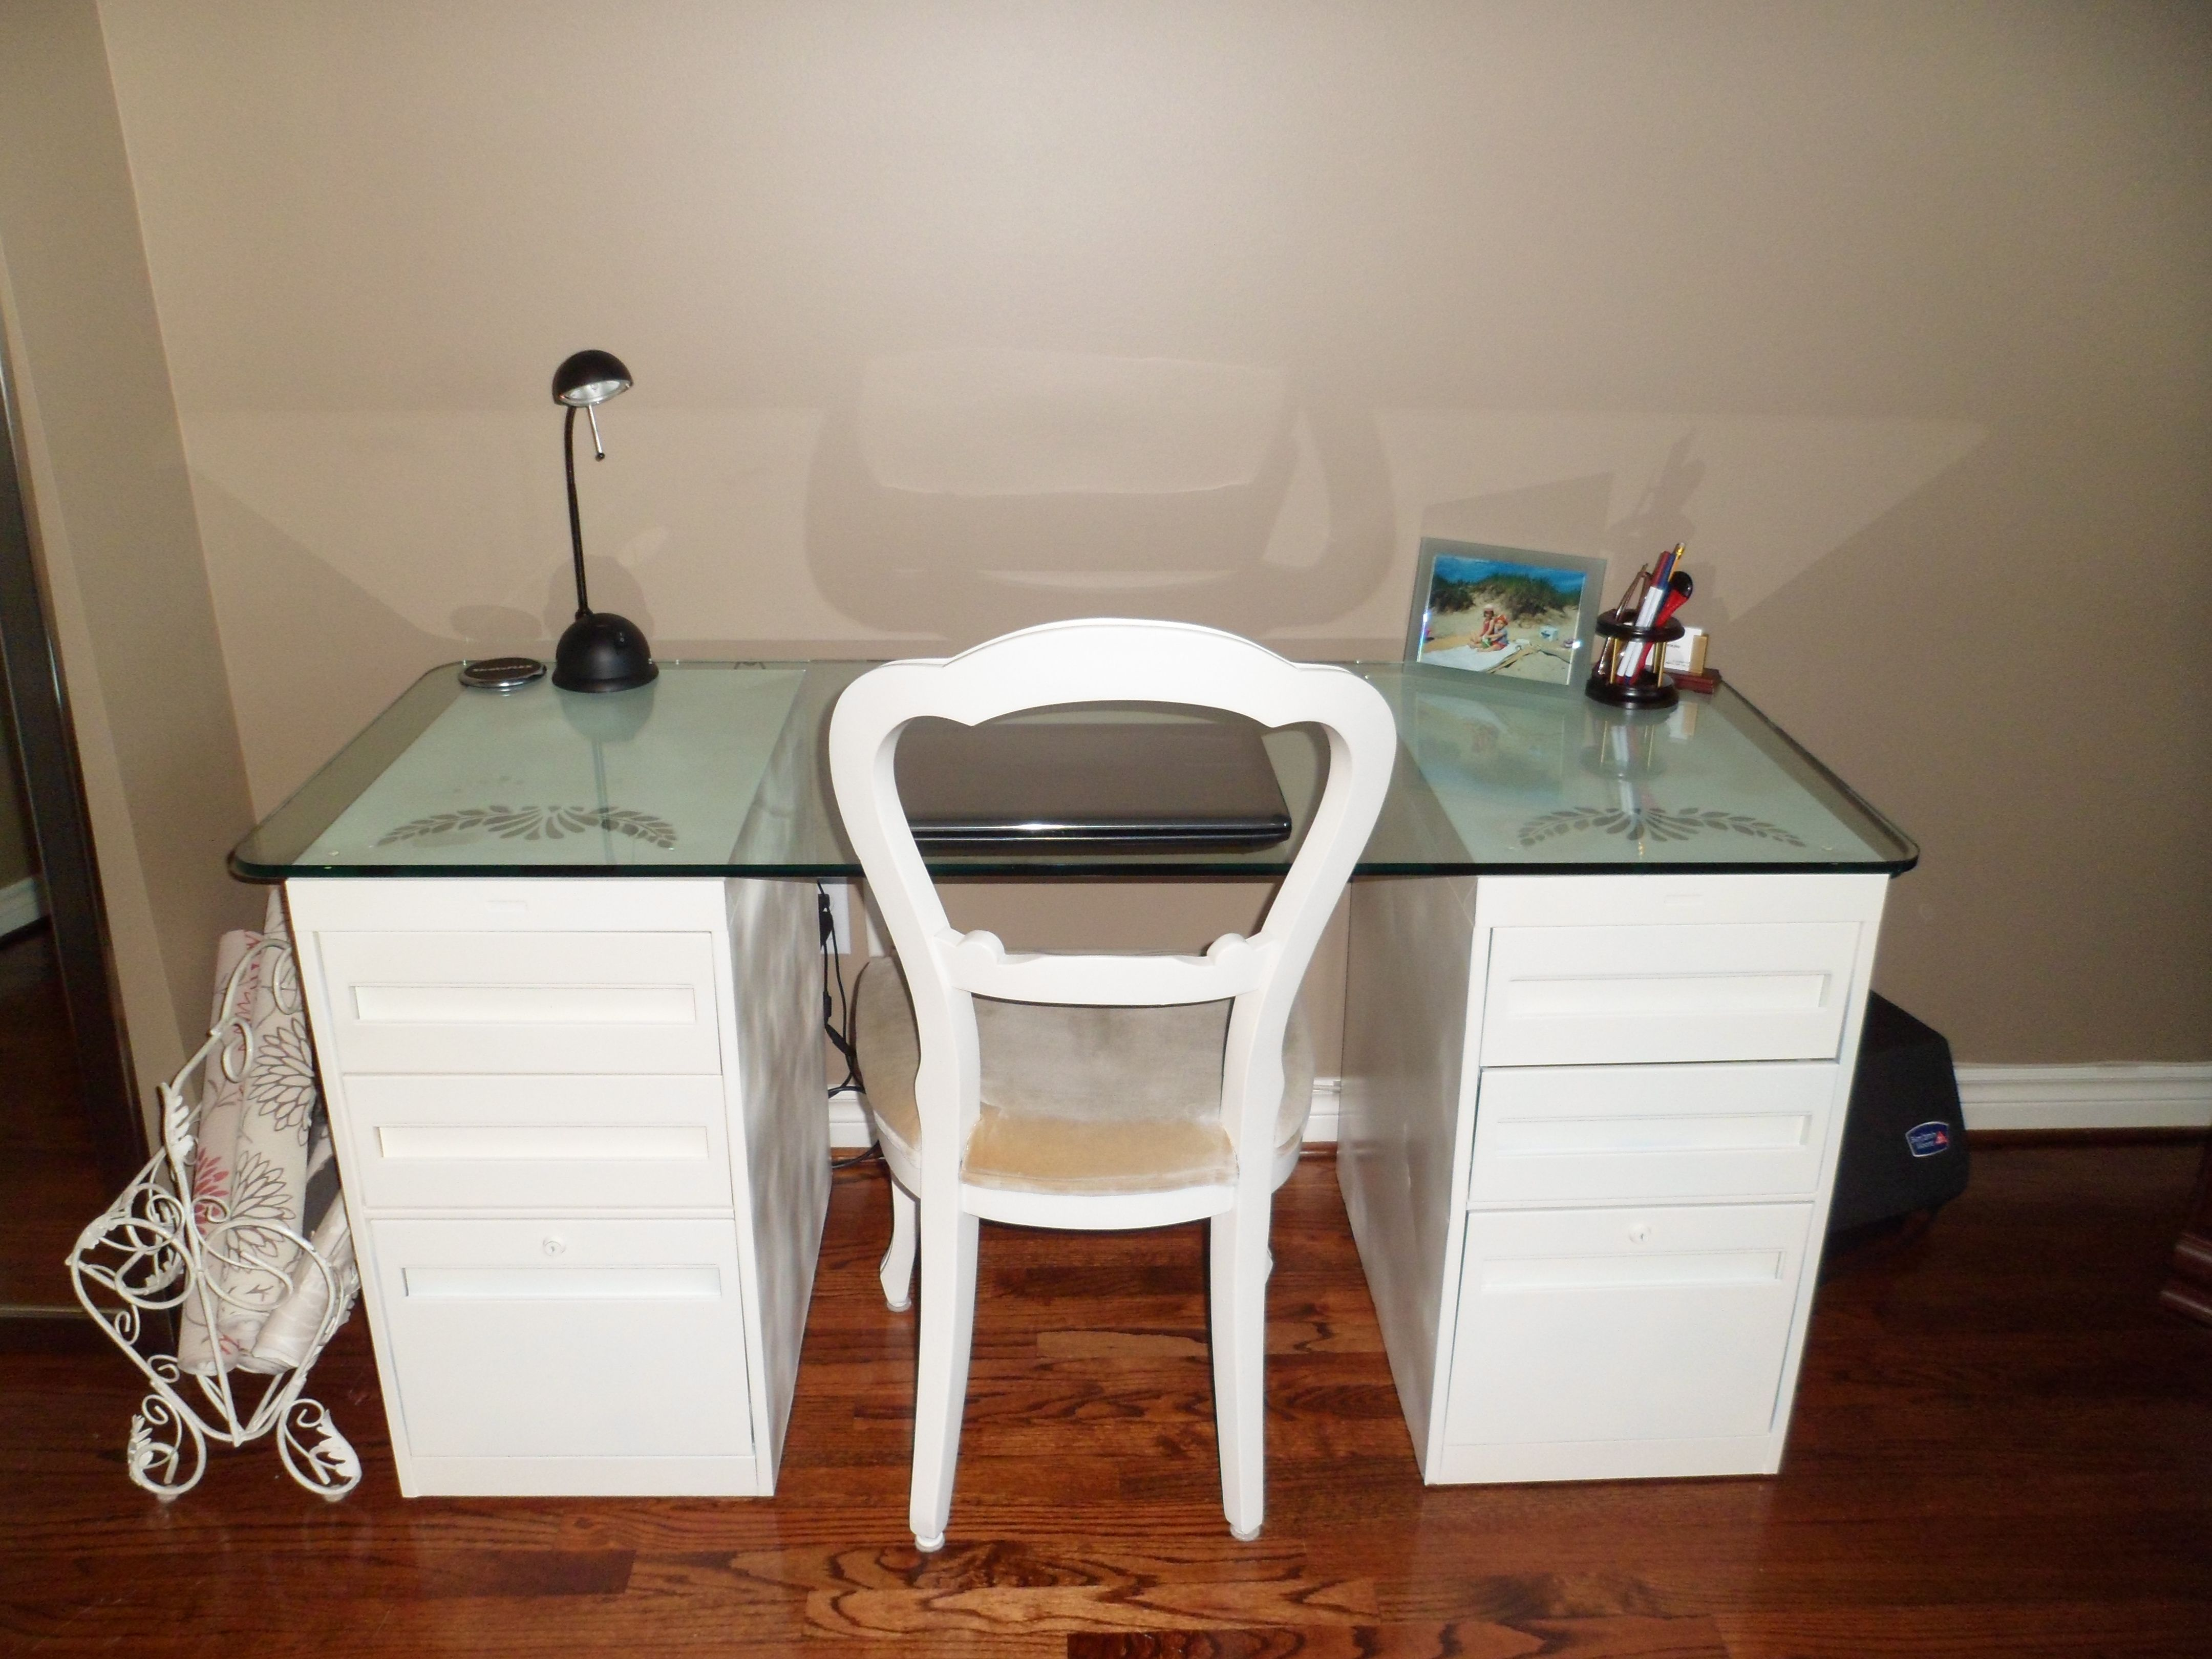 I Created This Desk By Painting 2 Old Steel Filing Cabinets And